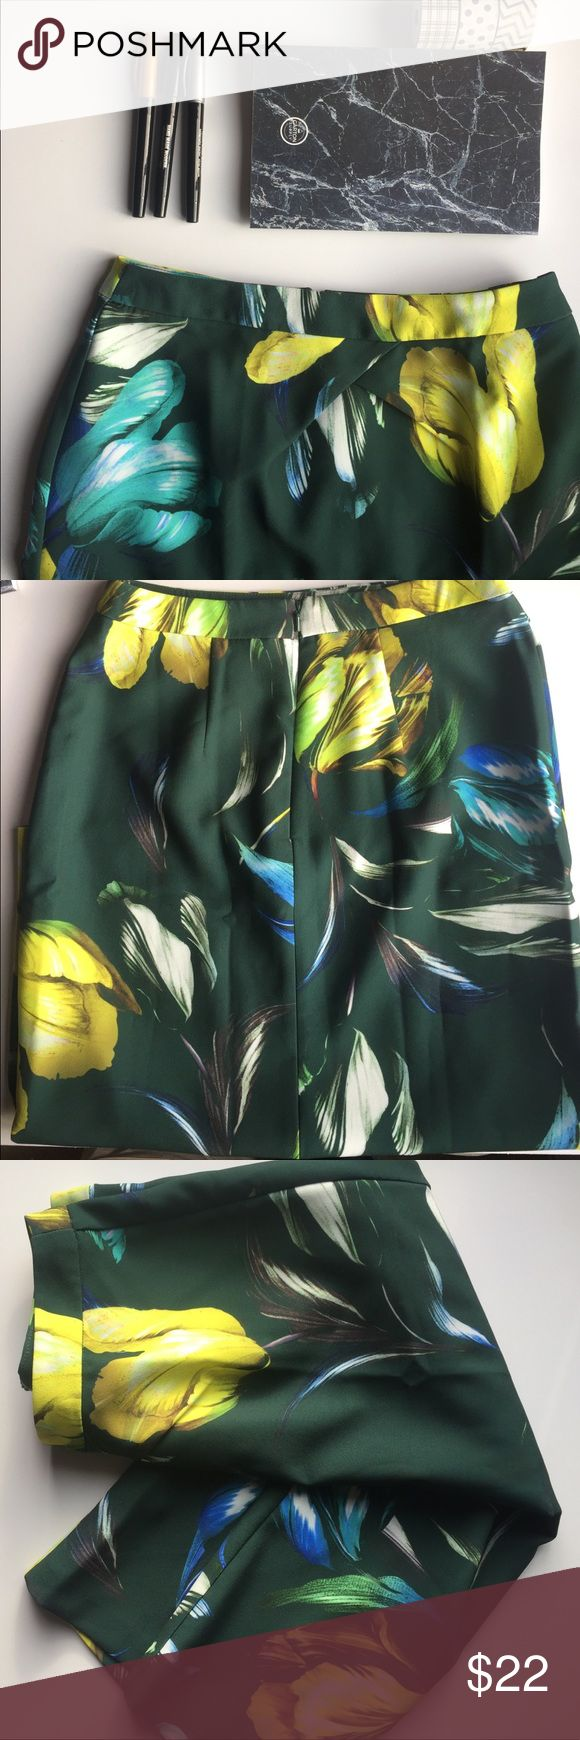 ASOS Petite Floral skirt size 4 This is a midi length skirt - 26.5 inches long. It has two small, and very unnoticeable flaws that I did take a photo of and you can see. It is a petite skirt, size four. The colors all pop out, and it is a gorgeous piece to add to your wardrobe. ASOS Petite Skirts Midi